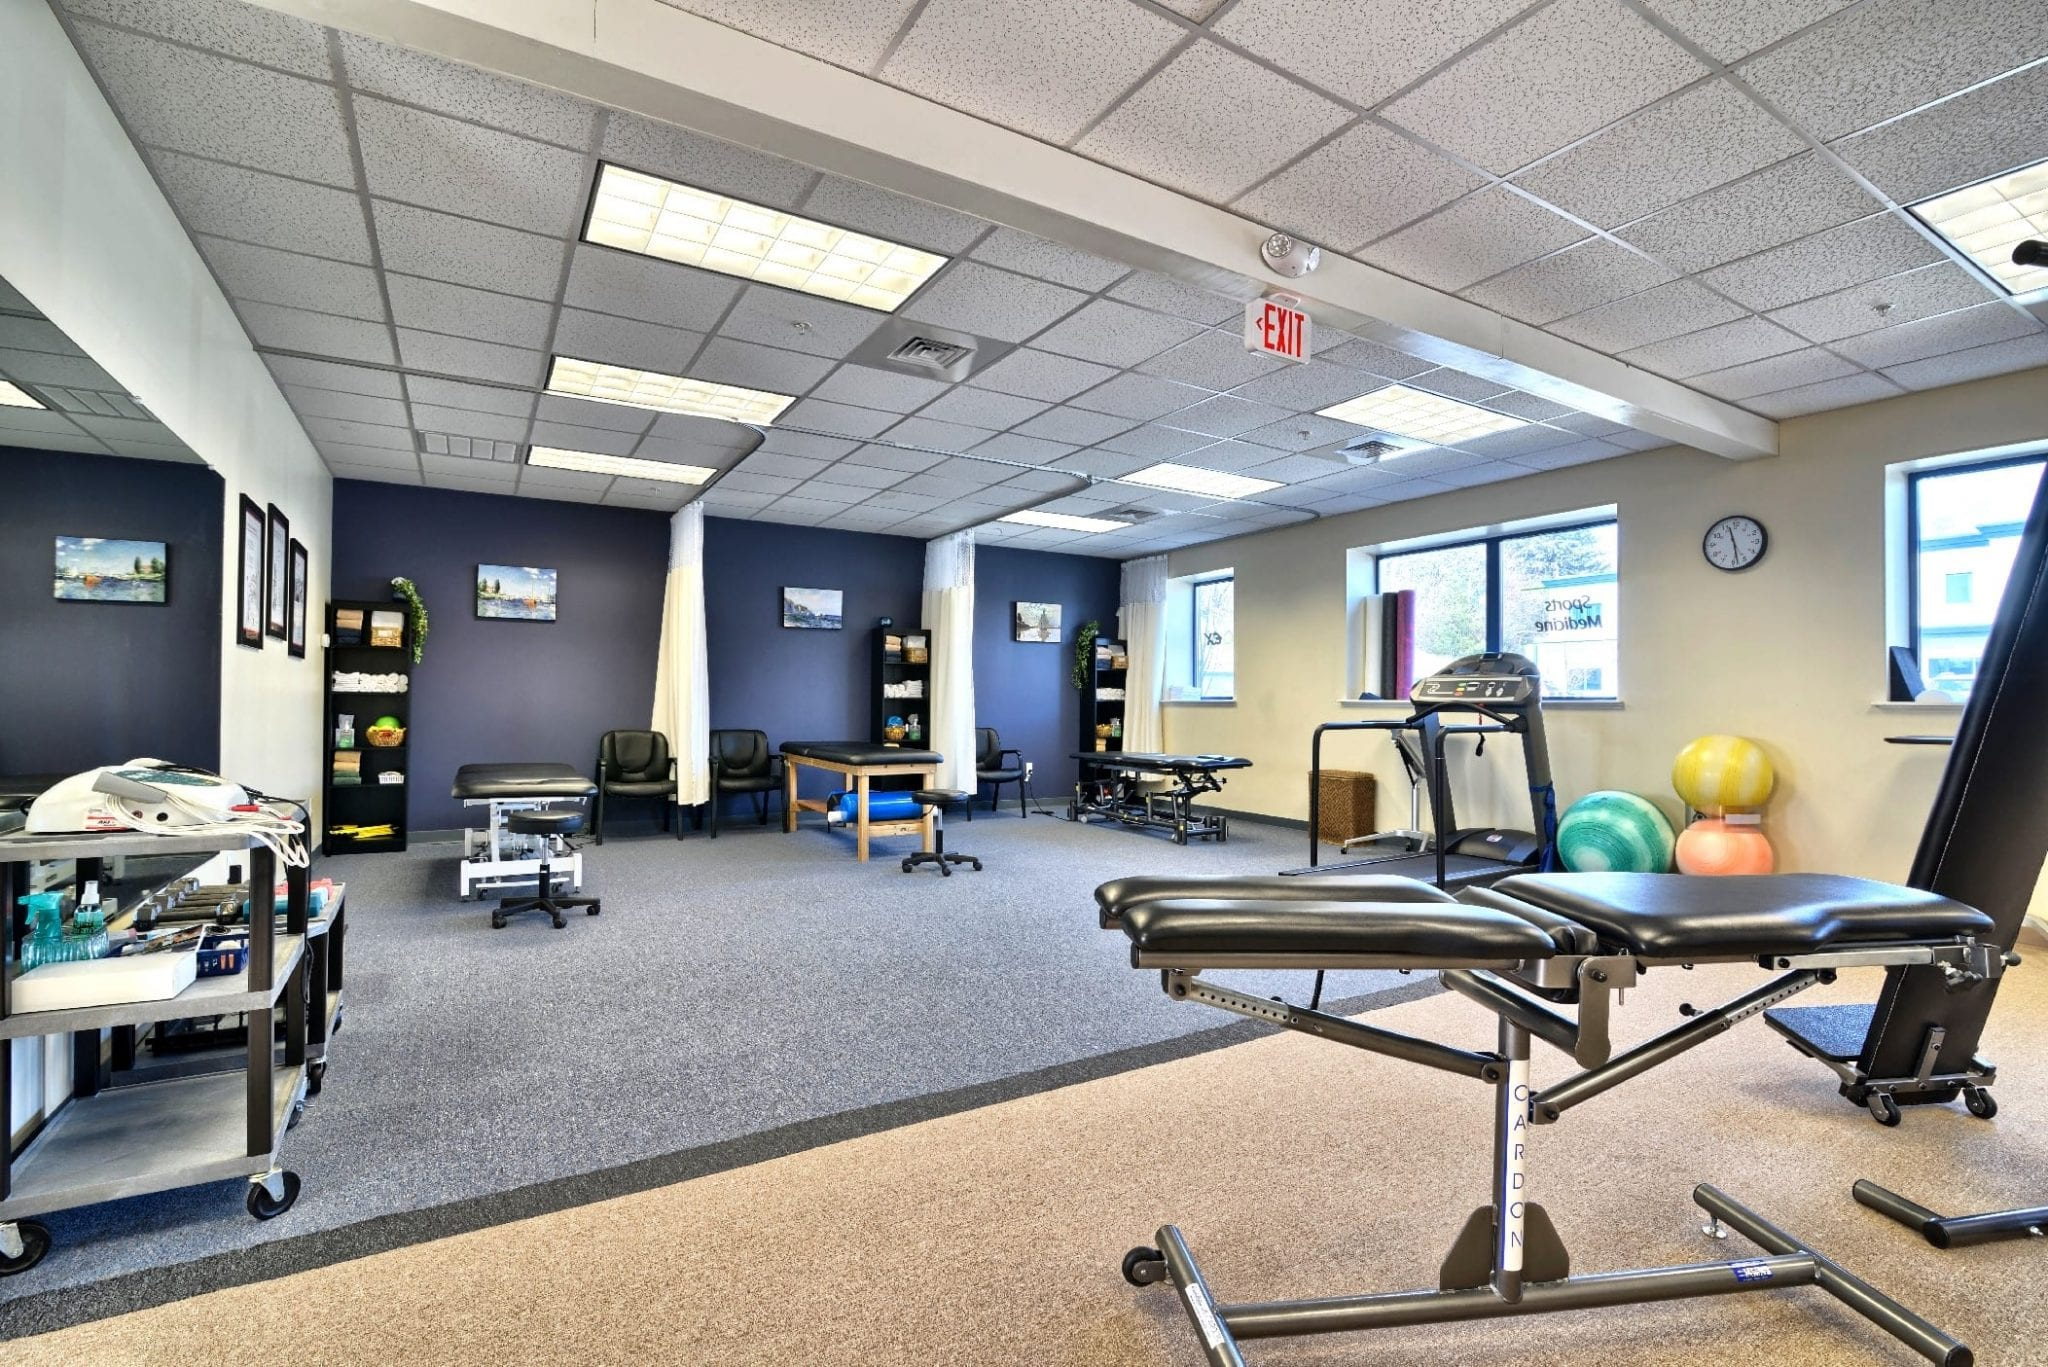 Here is an image of the interior of our physical therapy clinic in Amesbury, Massachusetts.